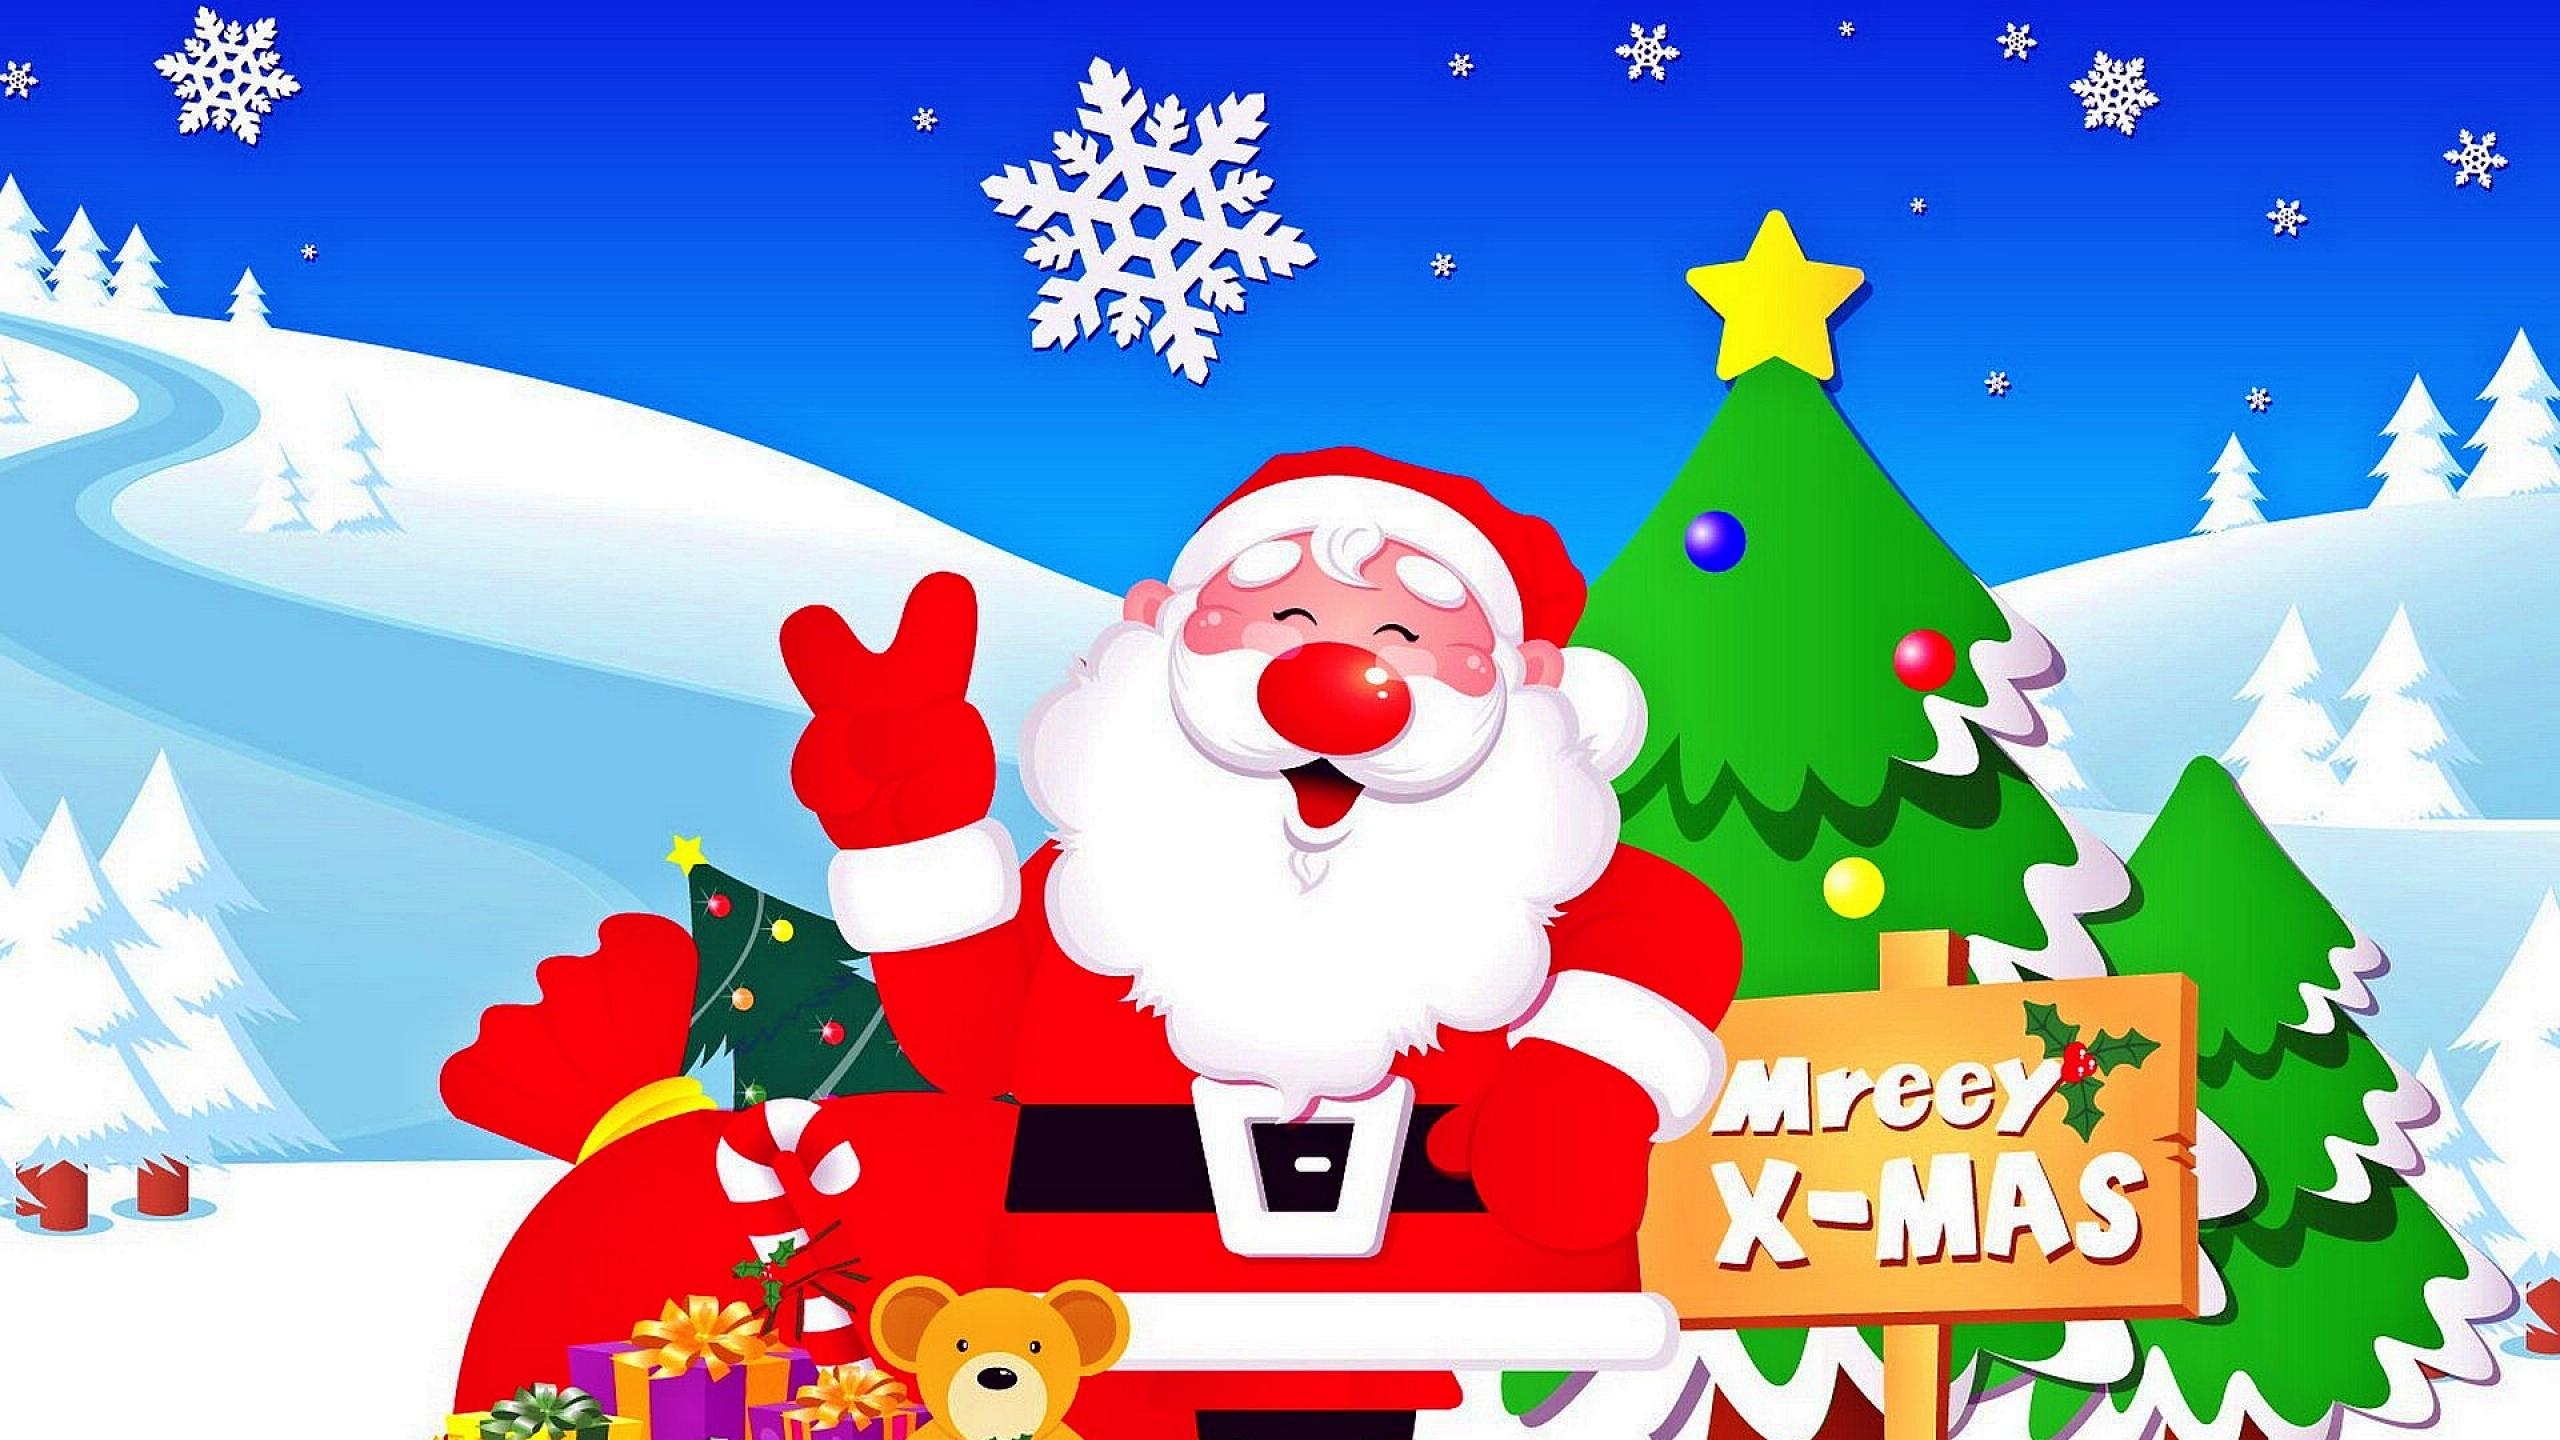 Free Download Cute Christmas Wallpapers